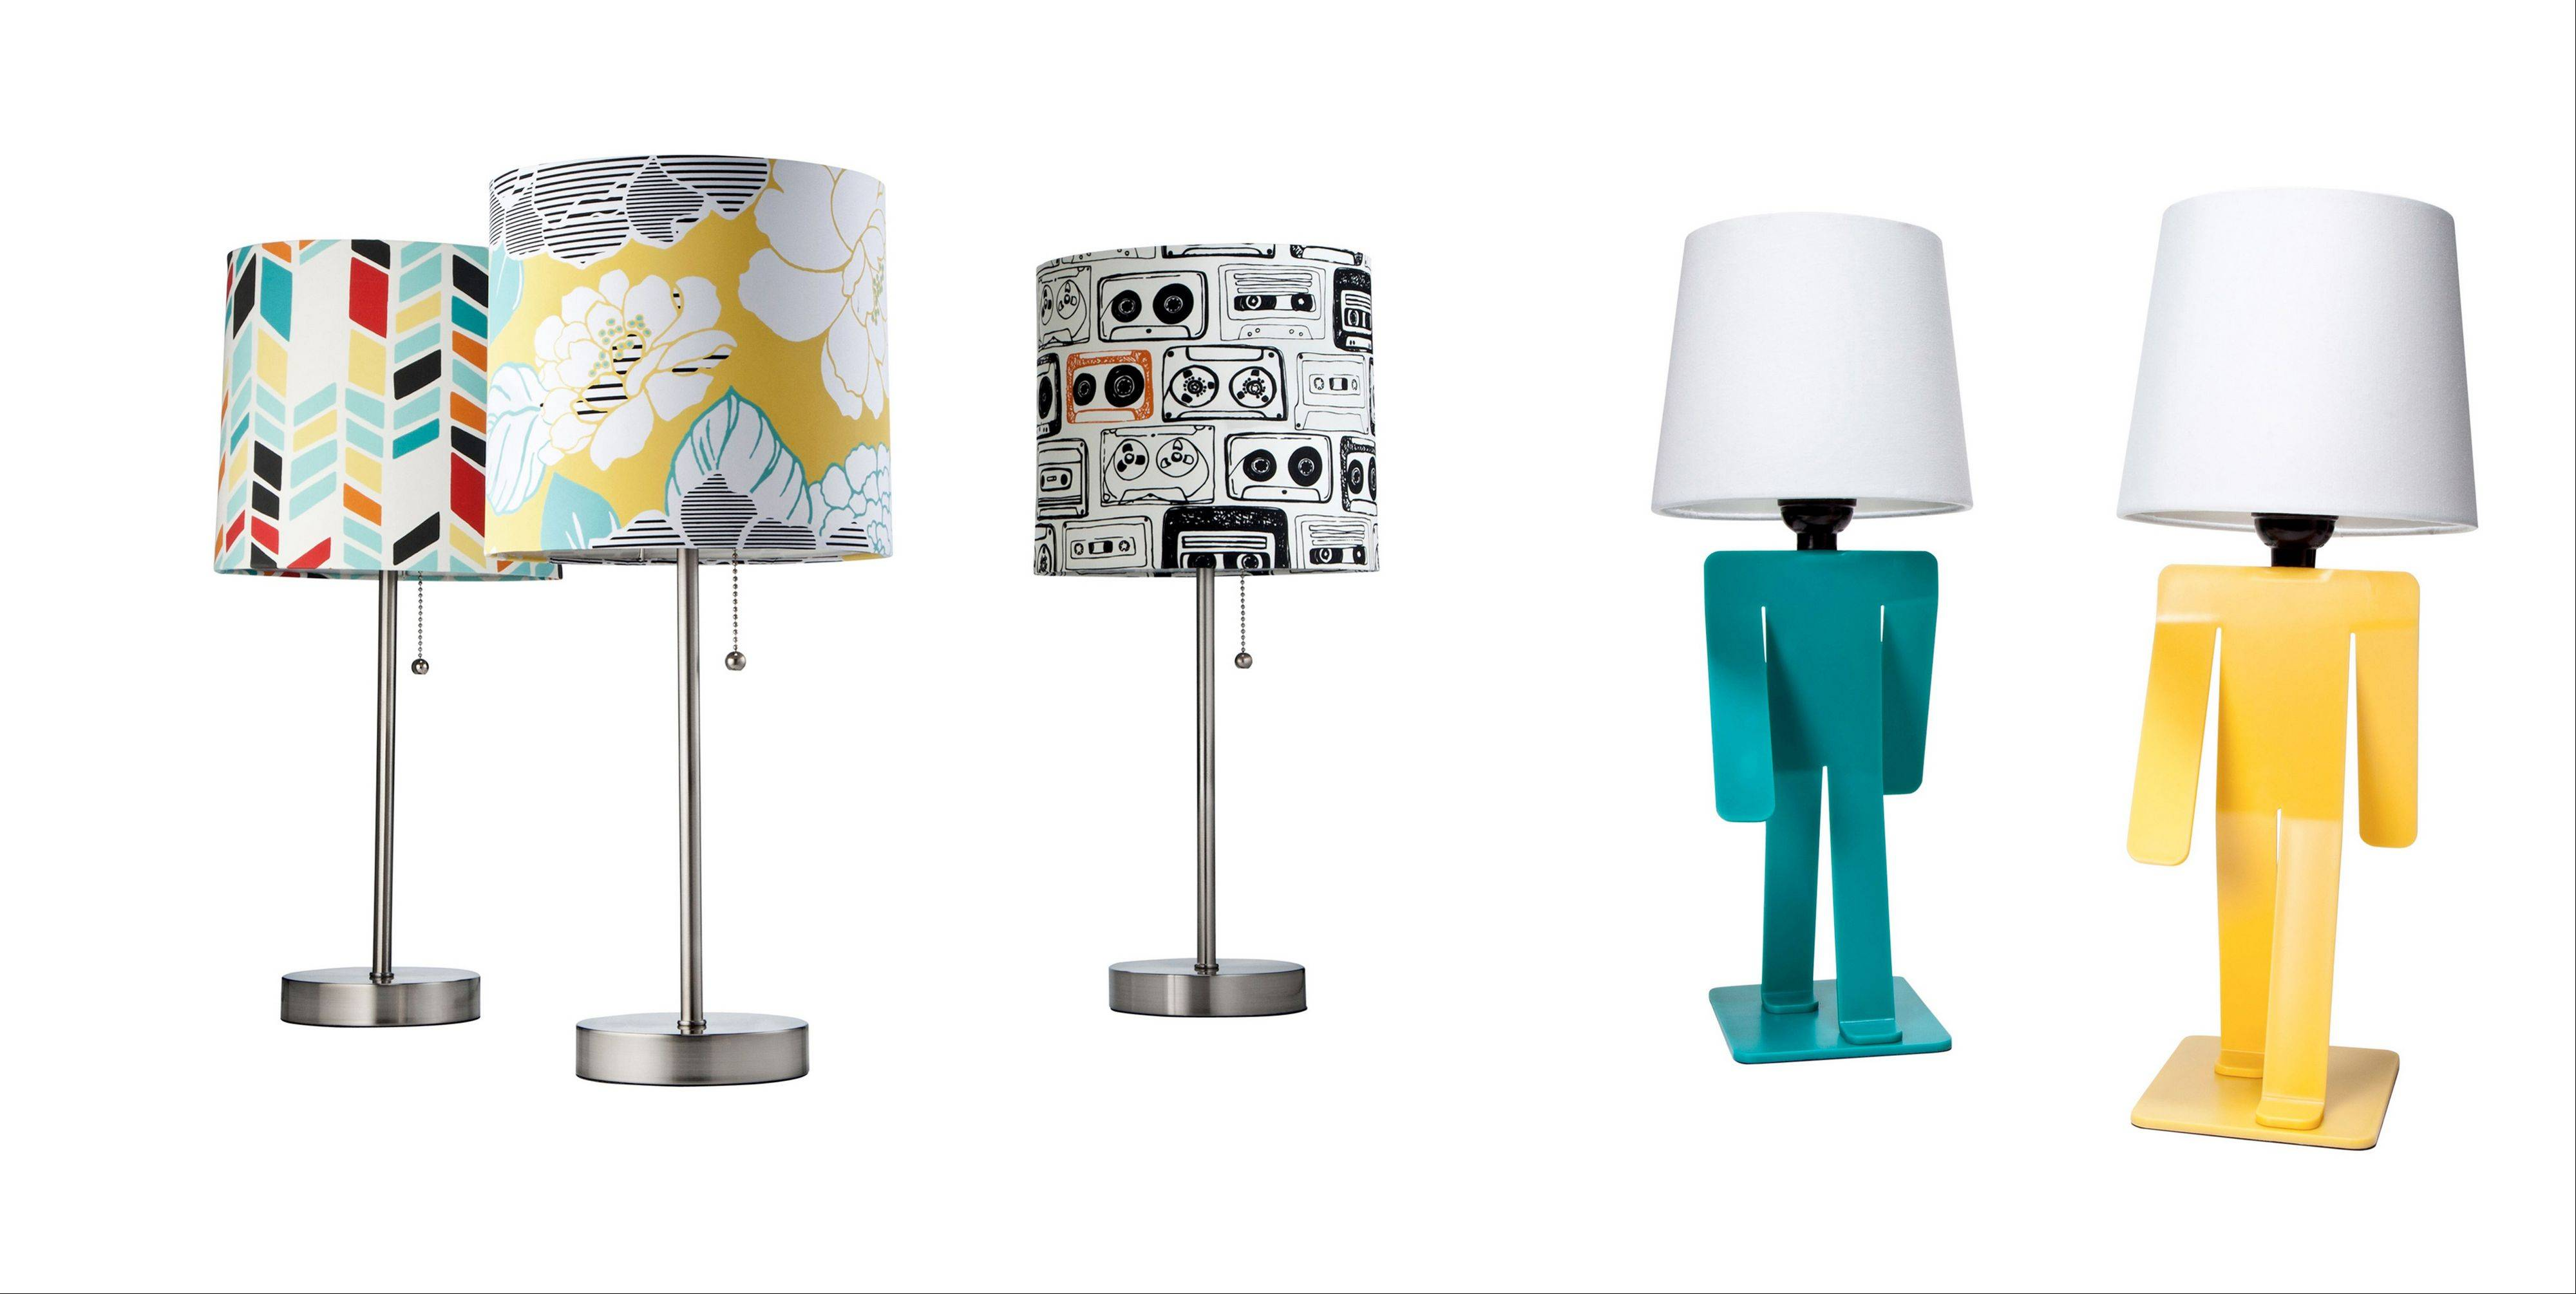 It's easy to add style to a basic dorm room by choosing lamps with personality, like the Stick Lamp, which has a variety of colorful print shades, and the Walking Man Lamp, both from Target.